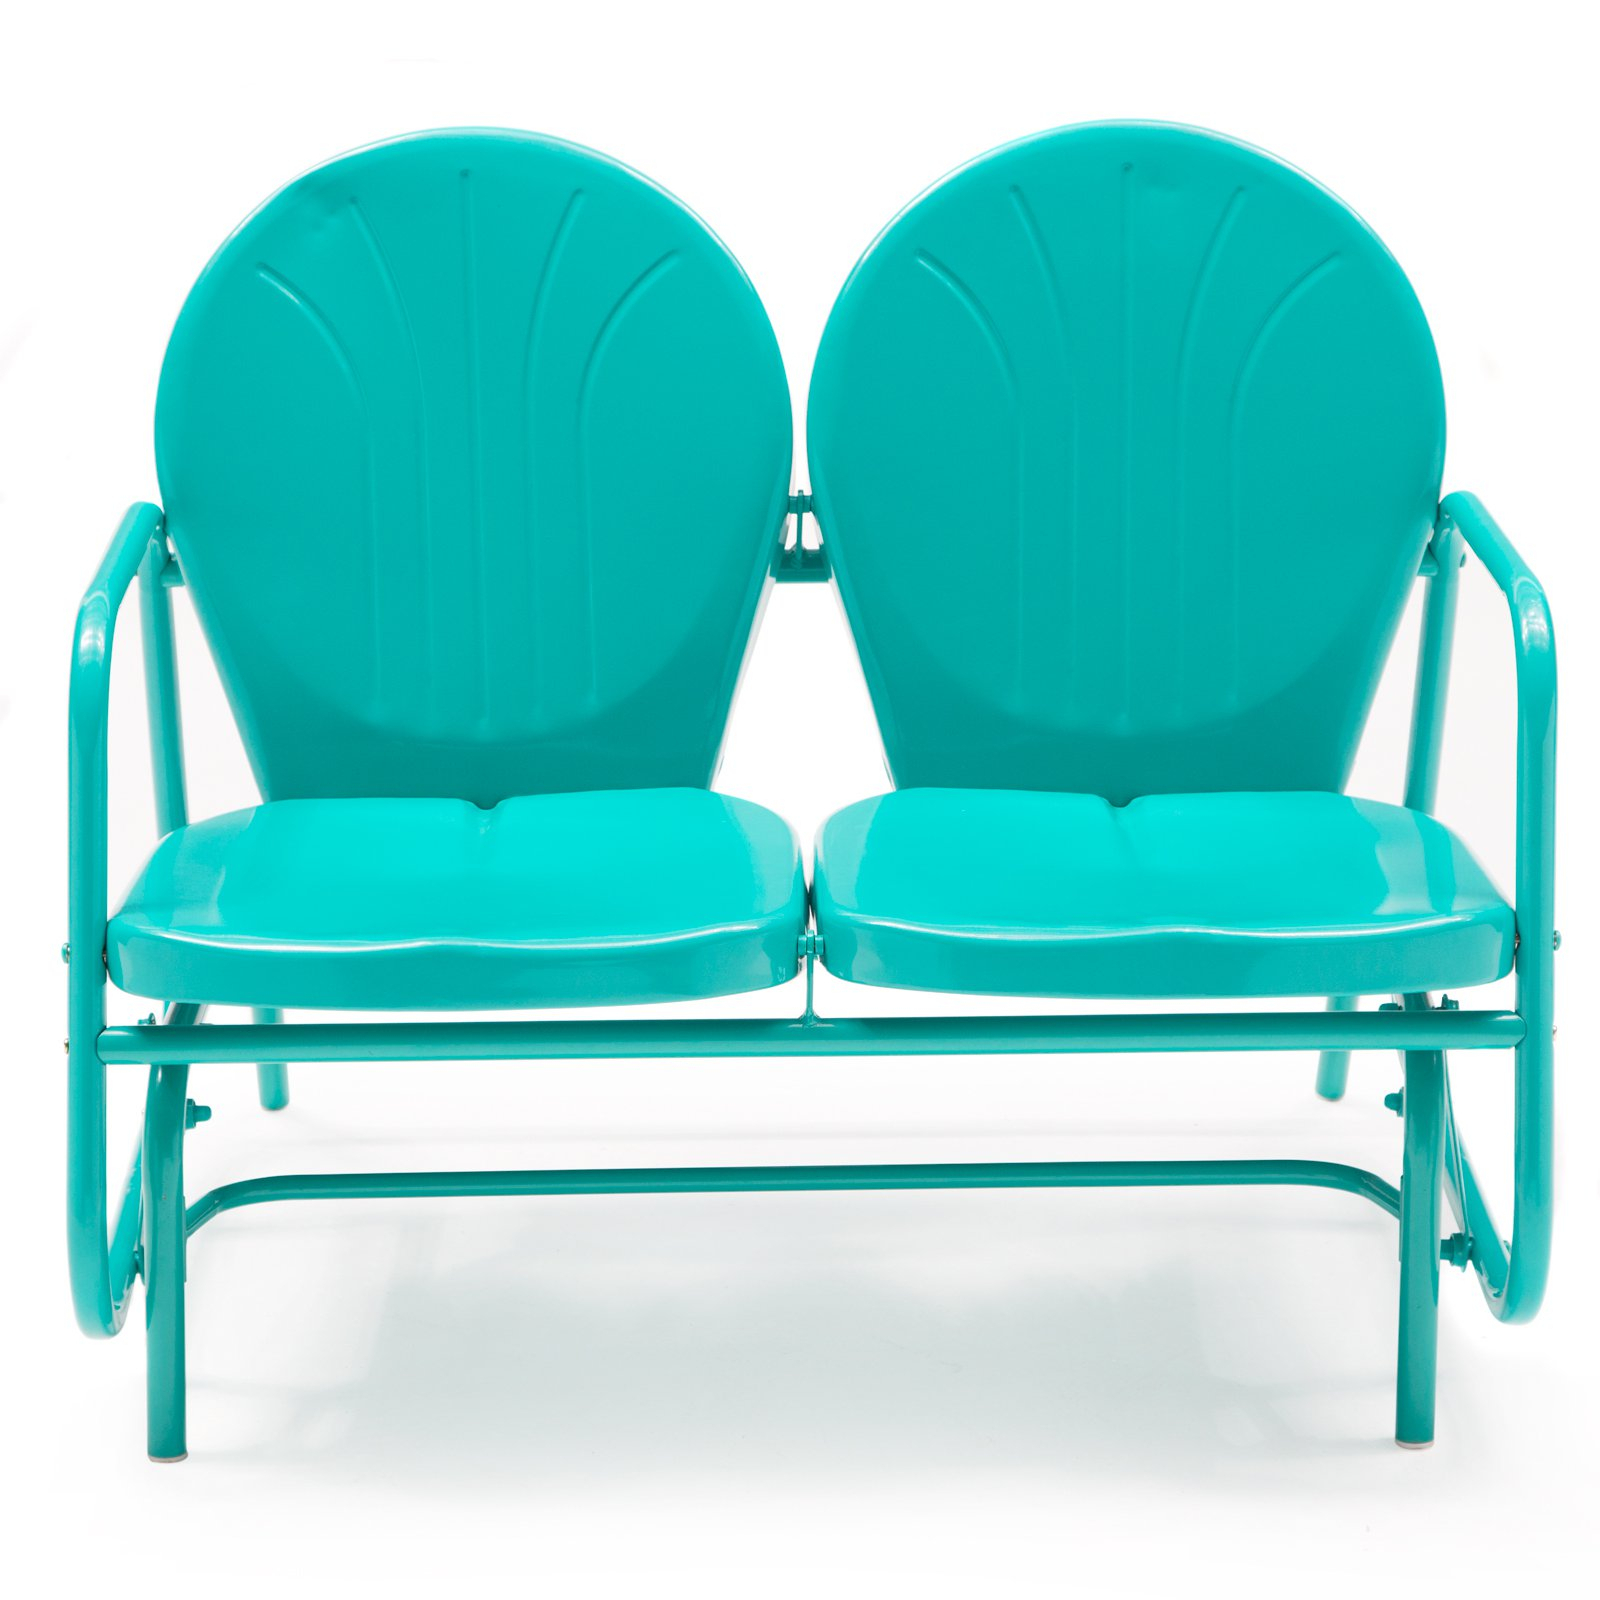 Modern Retro Metal Outdoor Furniture Vintage For Sale Inside Outdoor Retro Metal Double Glider Benches (View 9 of 25)